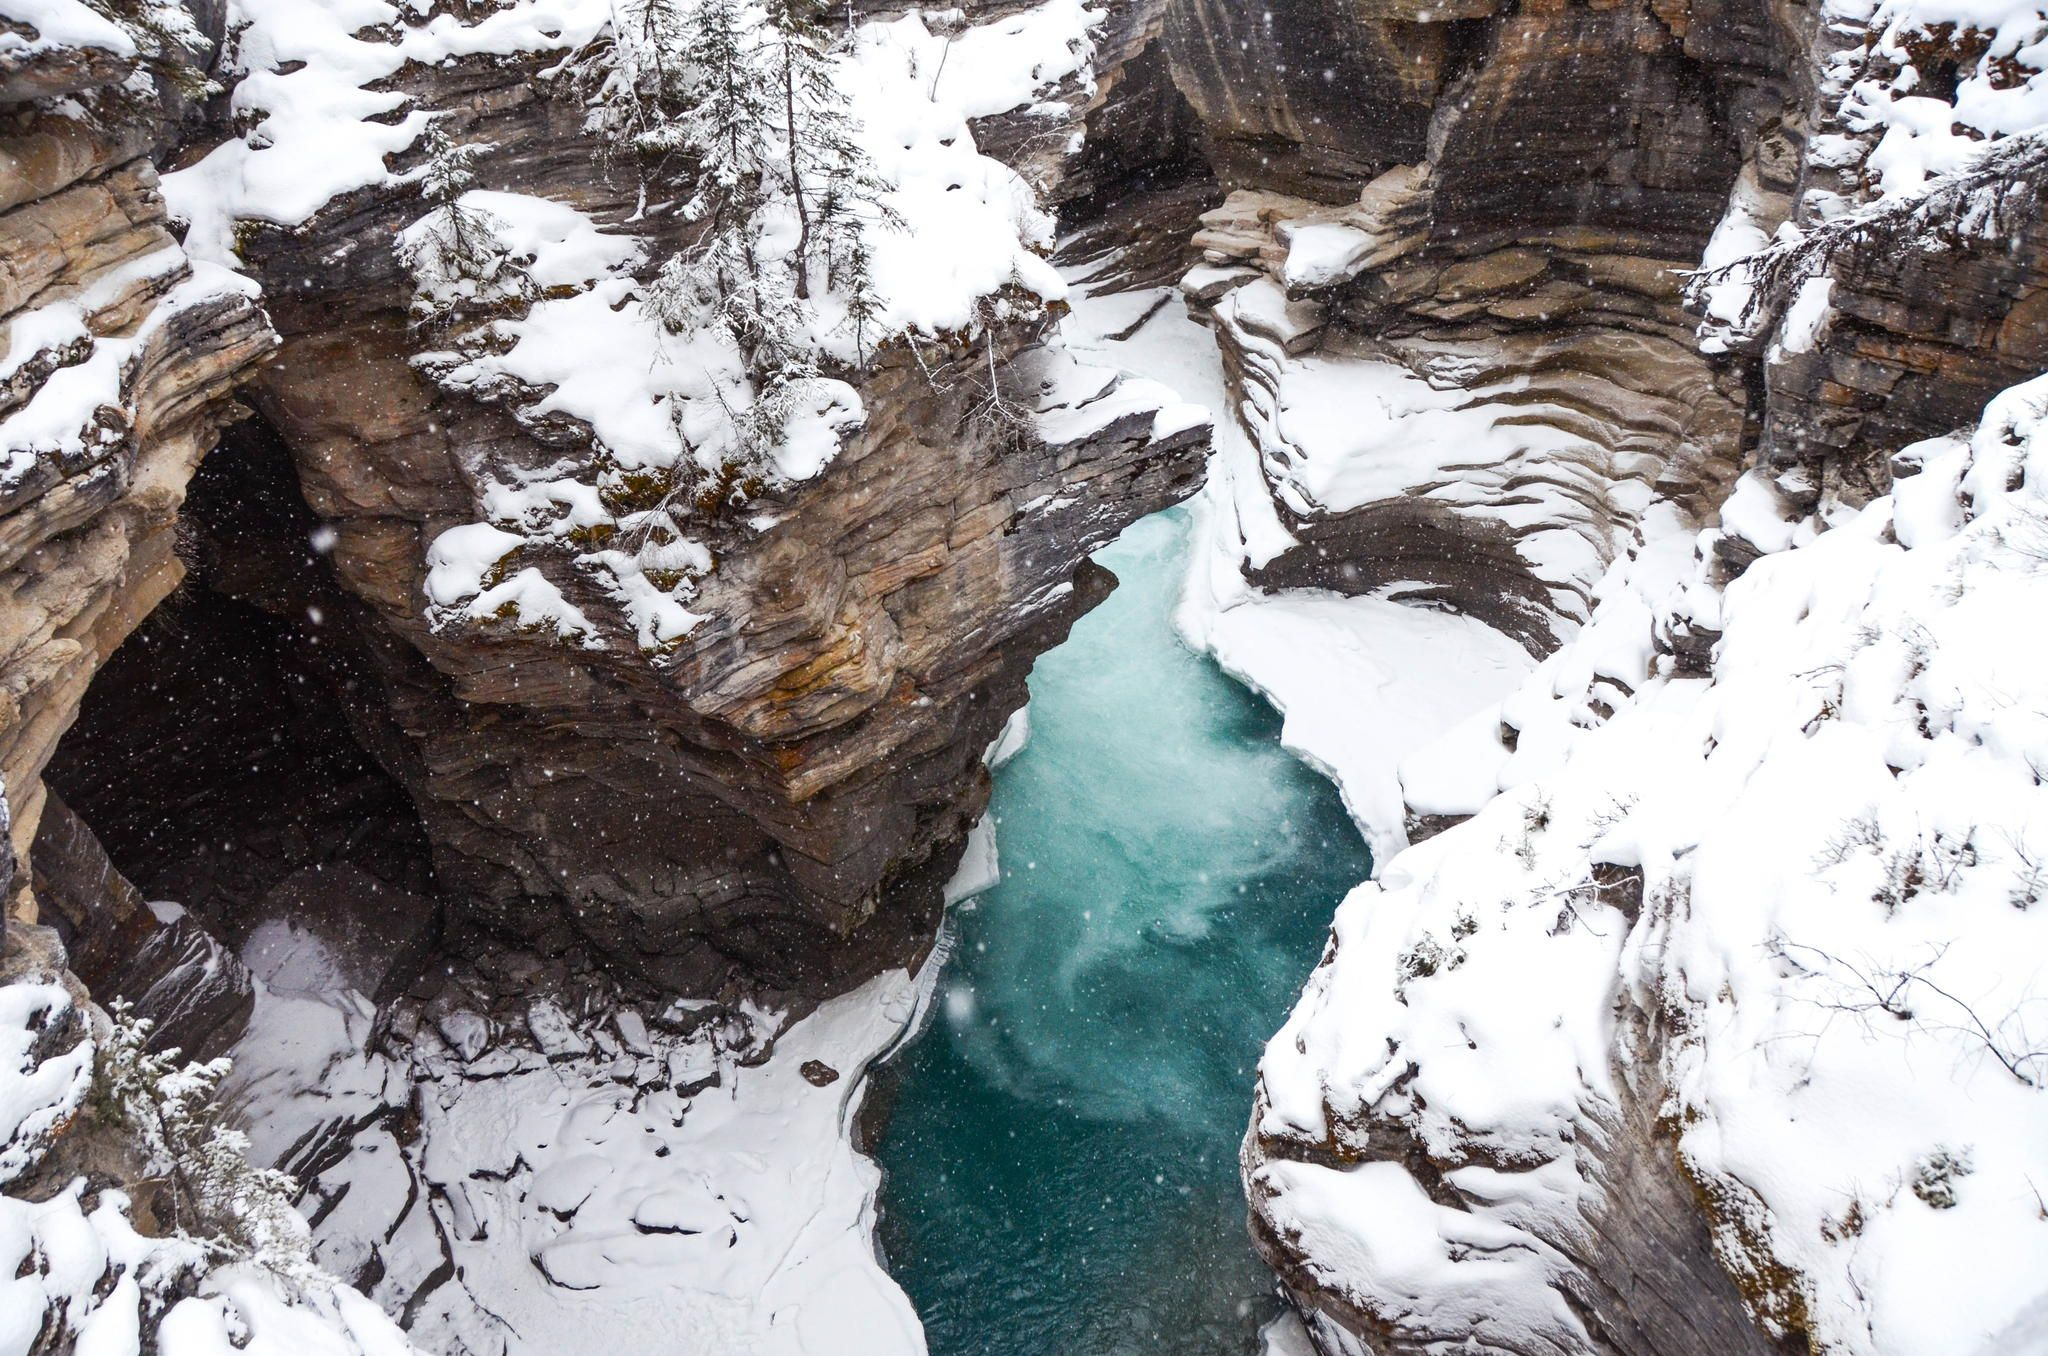 below Athabasca Falls by Chaney Swiney - Photo 57377084 - 500px